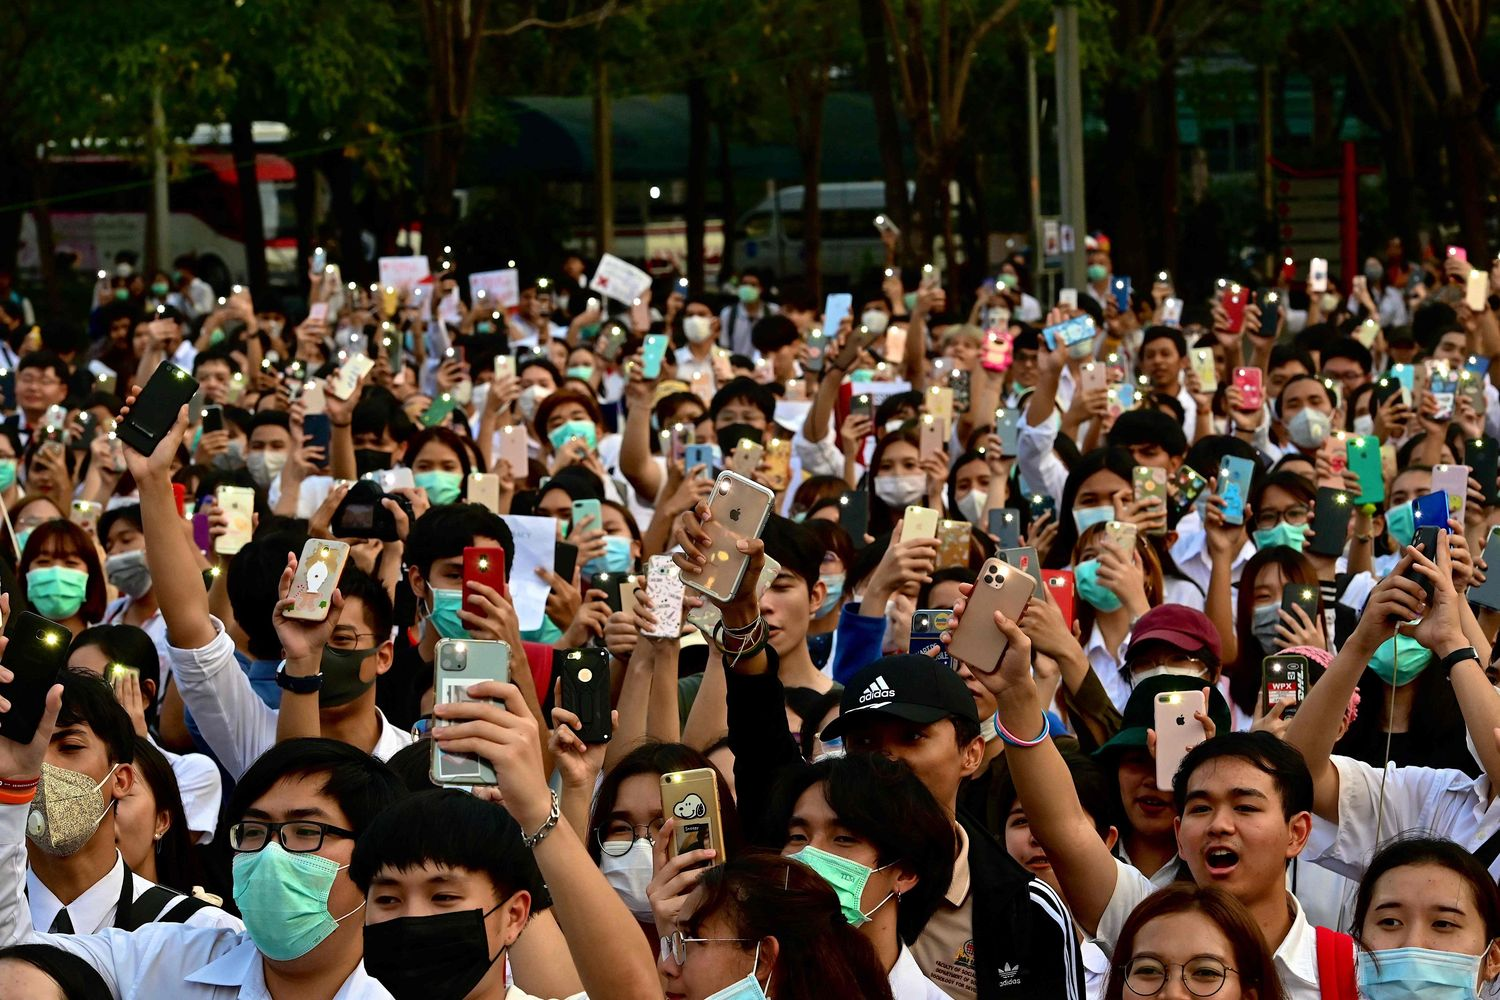 Students raise their mobile phones during a protest at Srinakharinwirot University in Bangkok on Wednesday. (AFP photo)